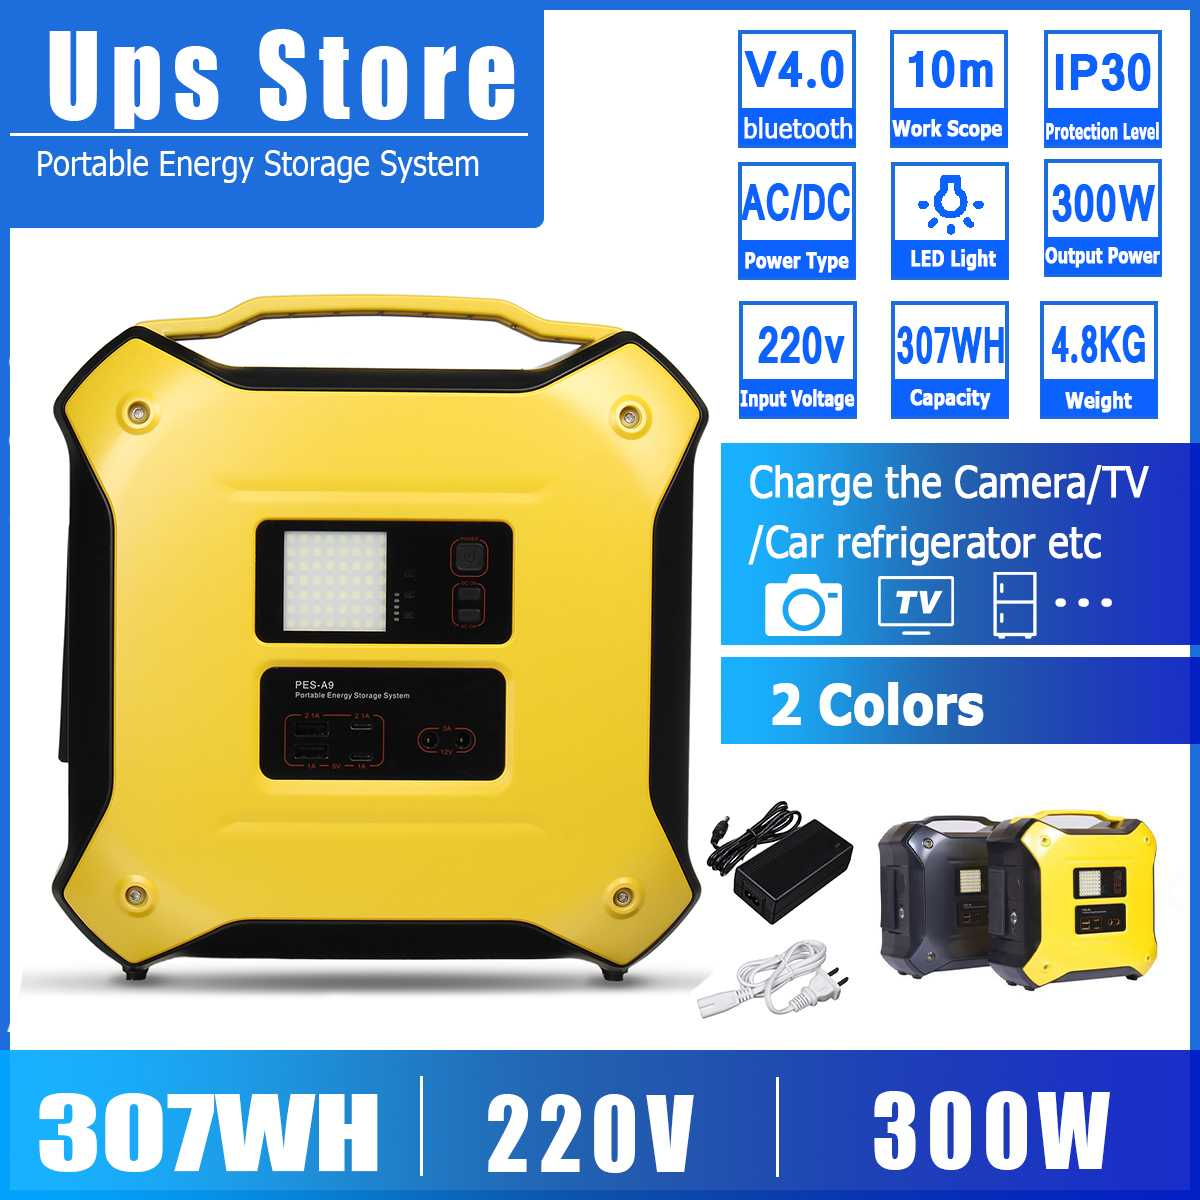 300W 307Wh bluetooth 4.0 Inverter Portable Solar Generator UPS AC DC Power Supply Dual USB Energy Storage System Outdoor 220V